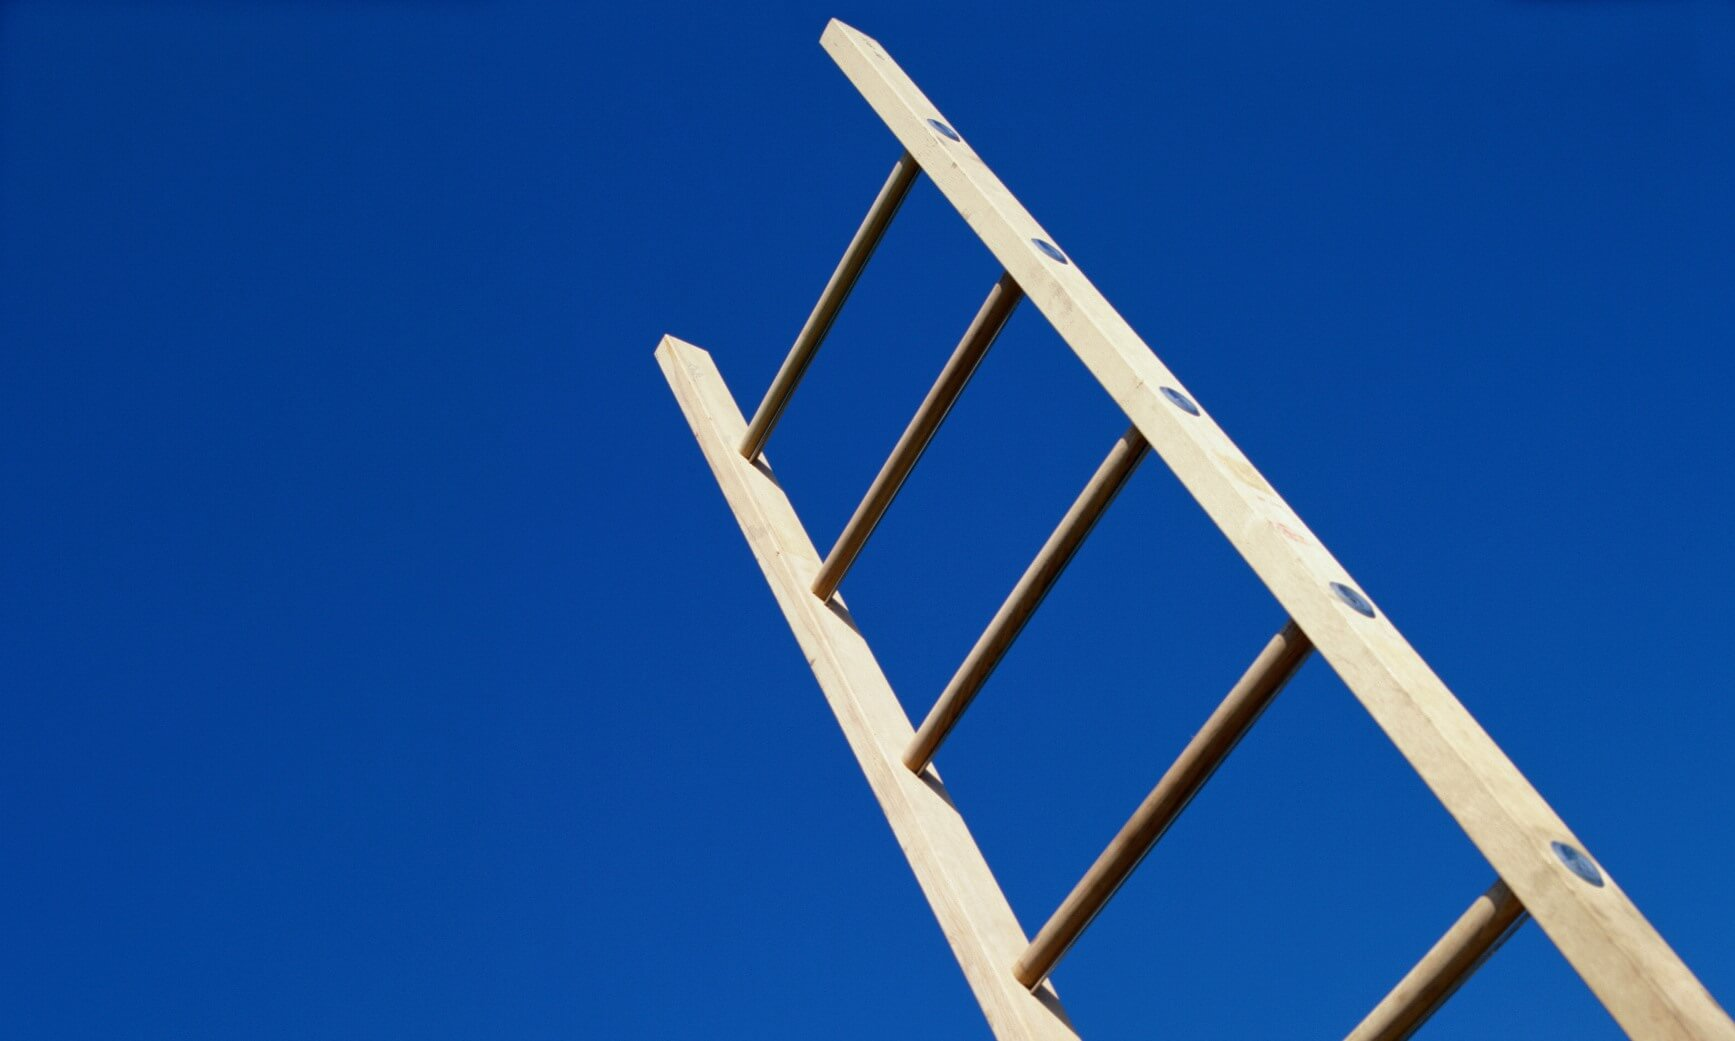 Ladder from Below